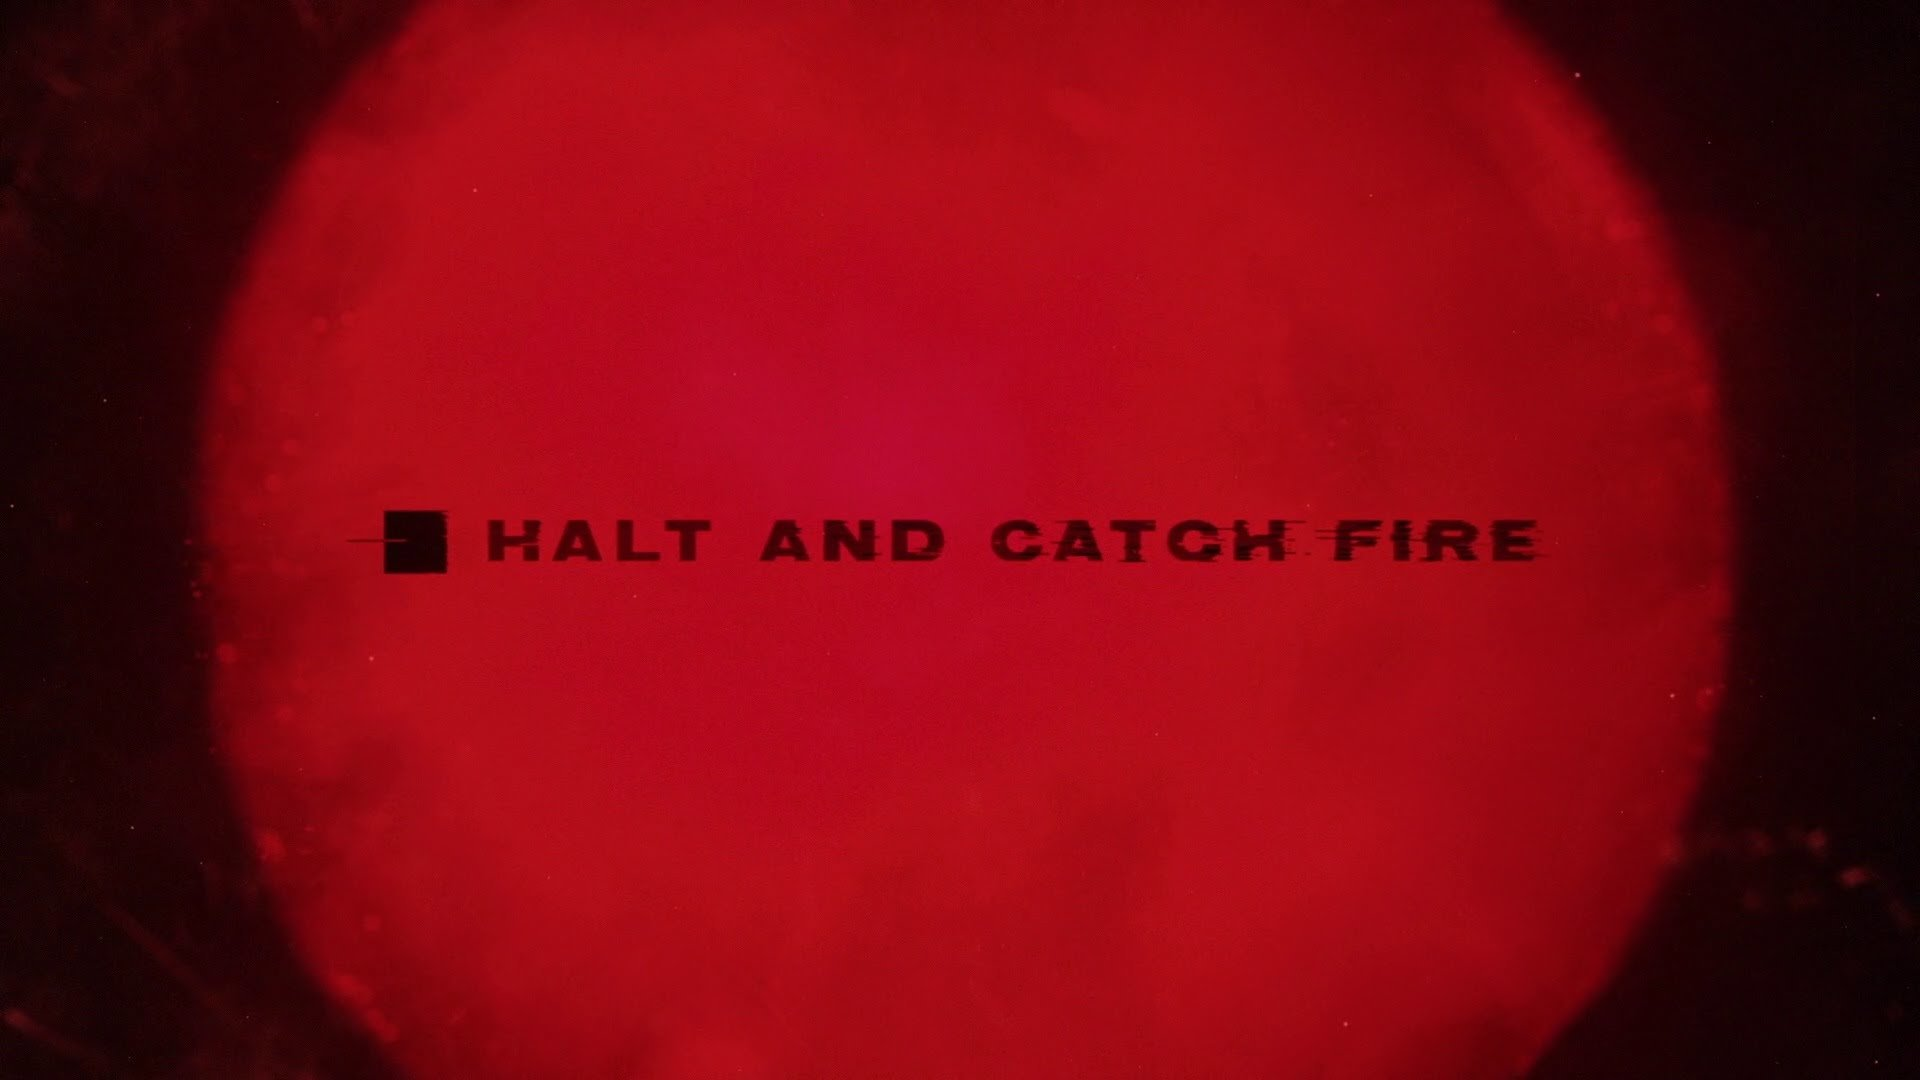 44 Halt And Catch Fire Hd Wallpapers Background Images